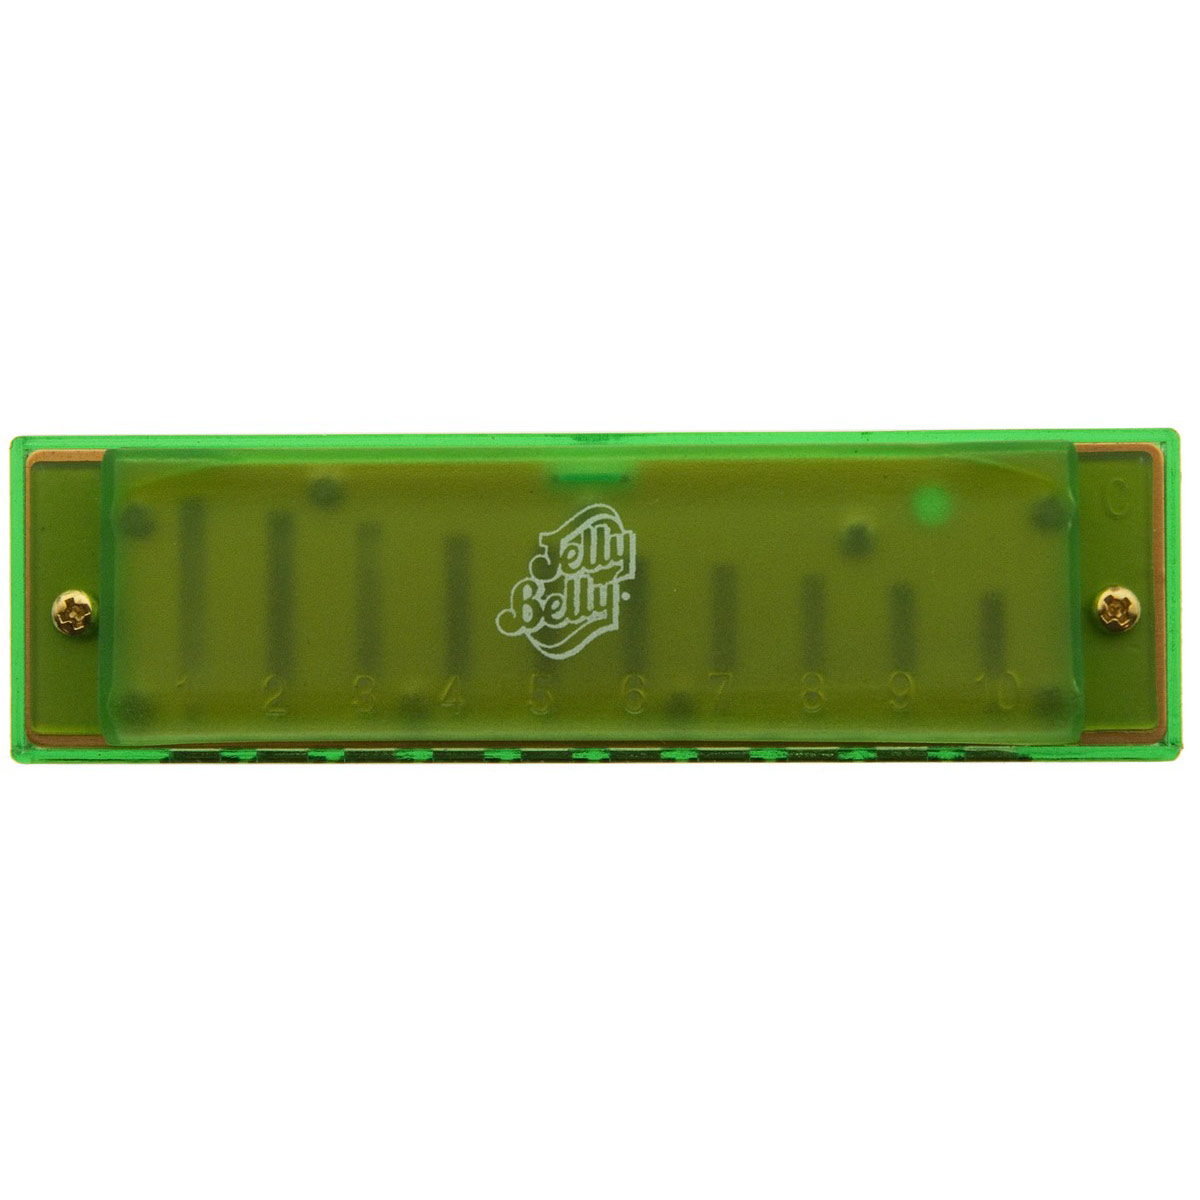 Jelly Belly Hohner brand Harmonica - Green